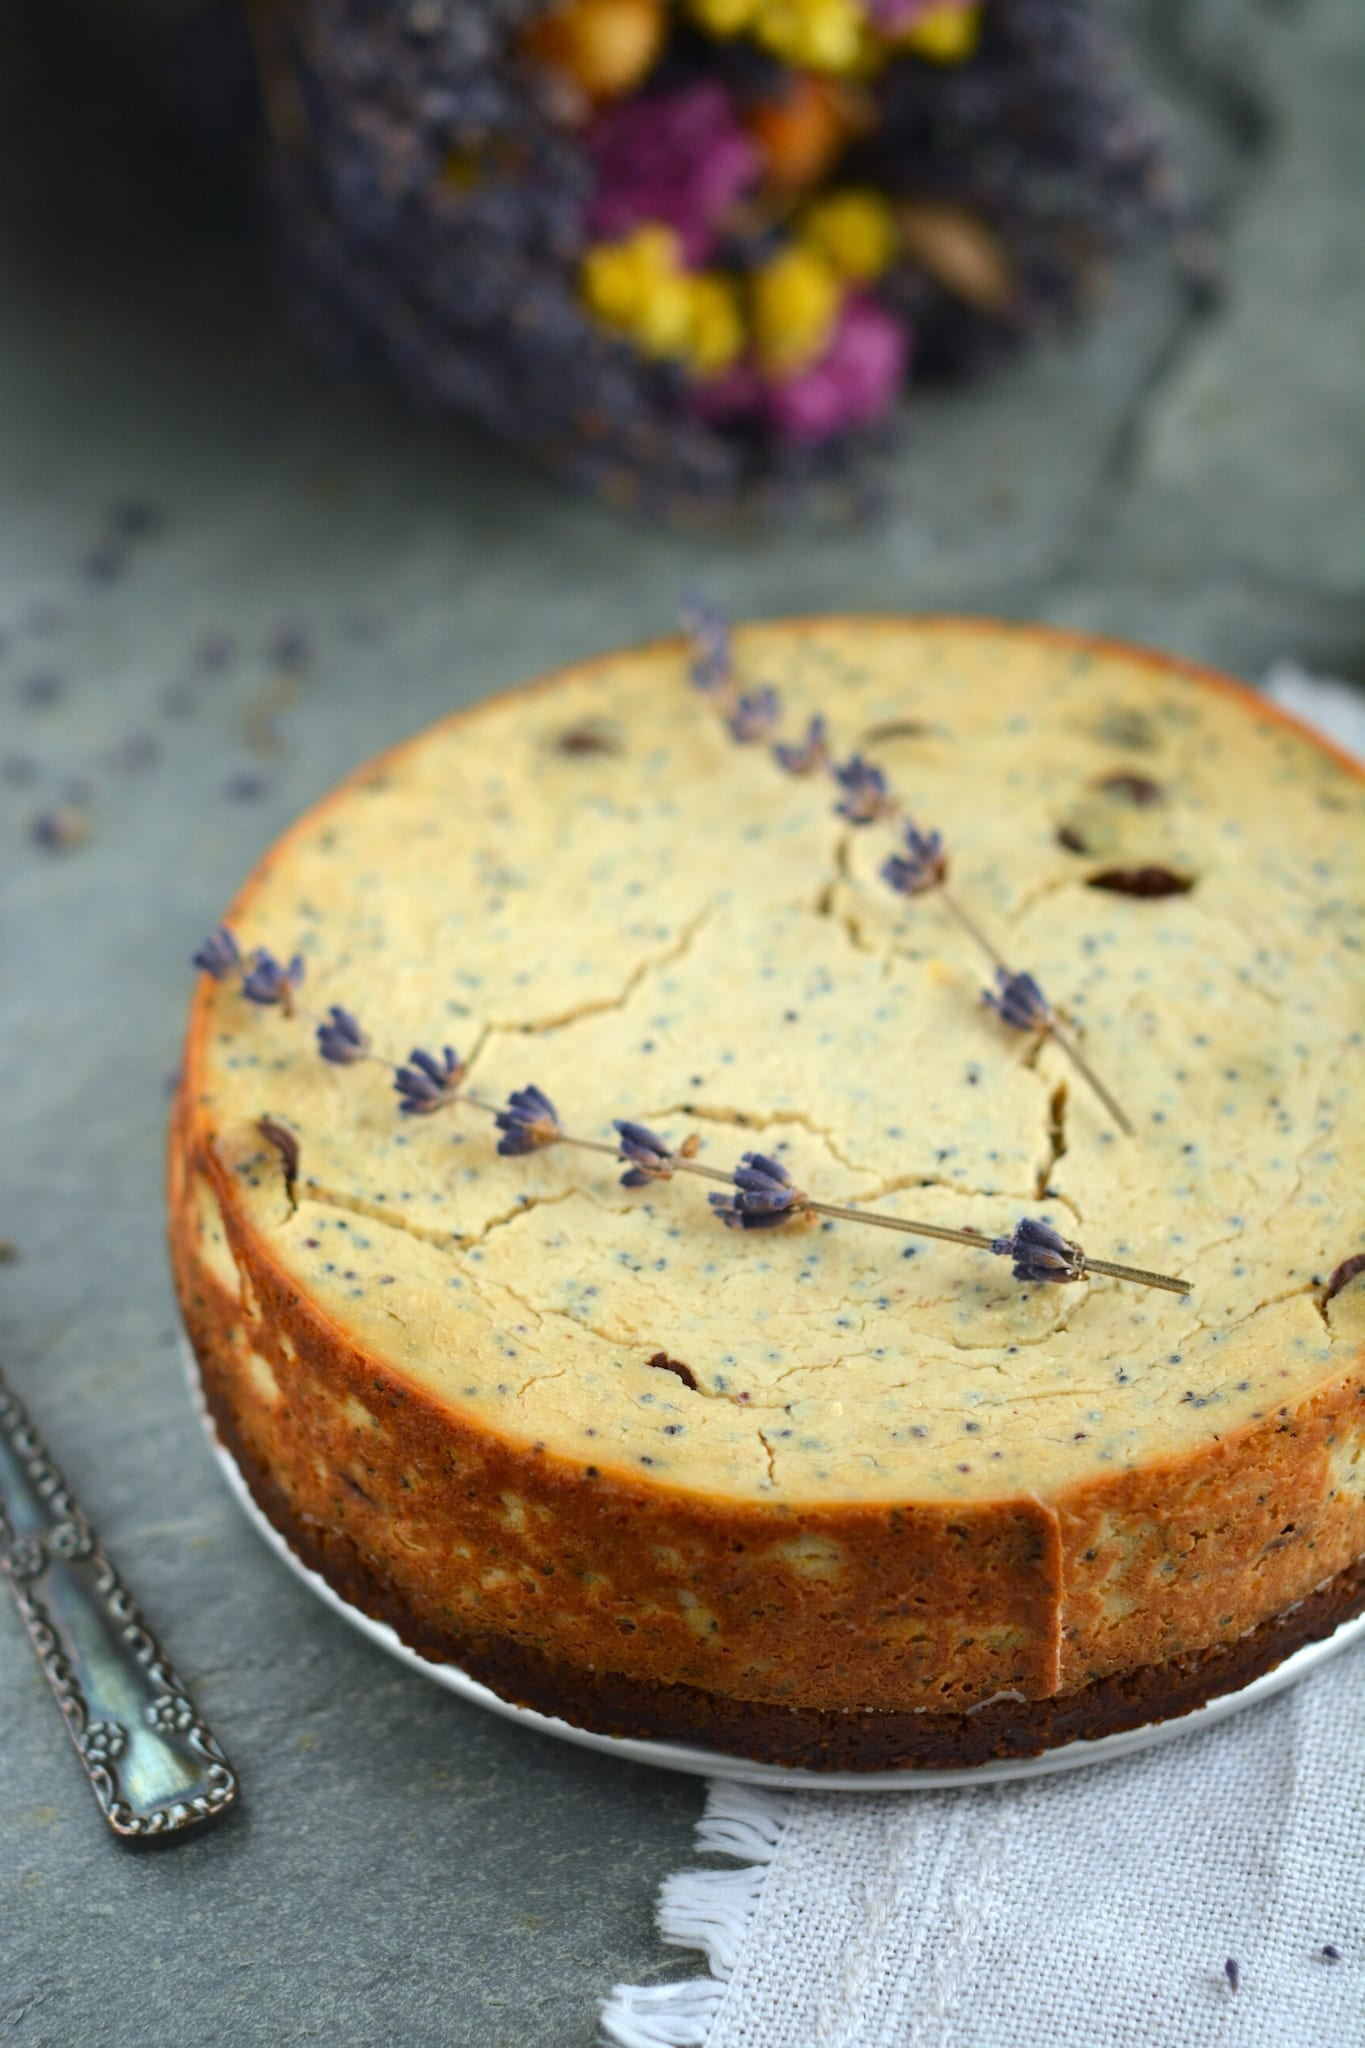 vegan-baked-cheesecake-tofu-chocolate-poppy-seeds